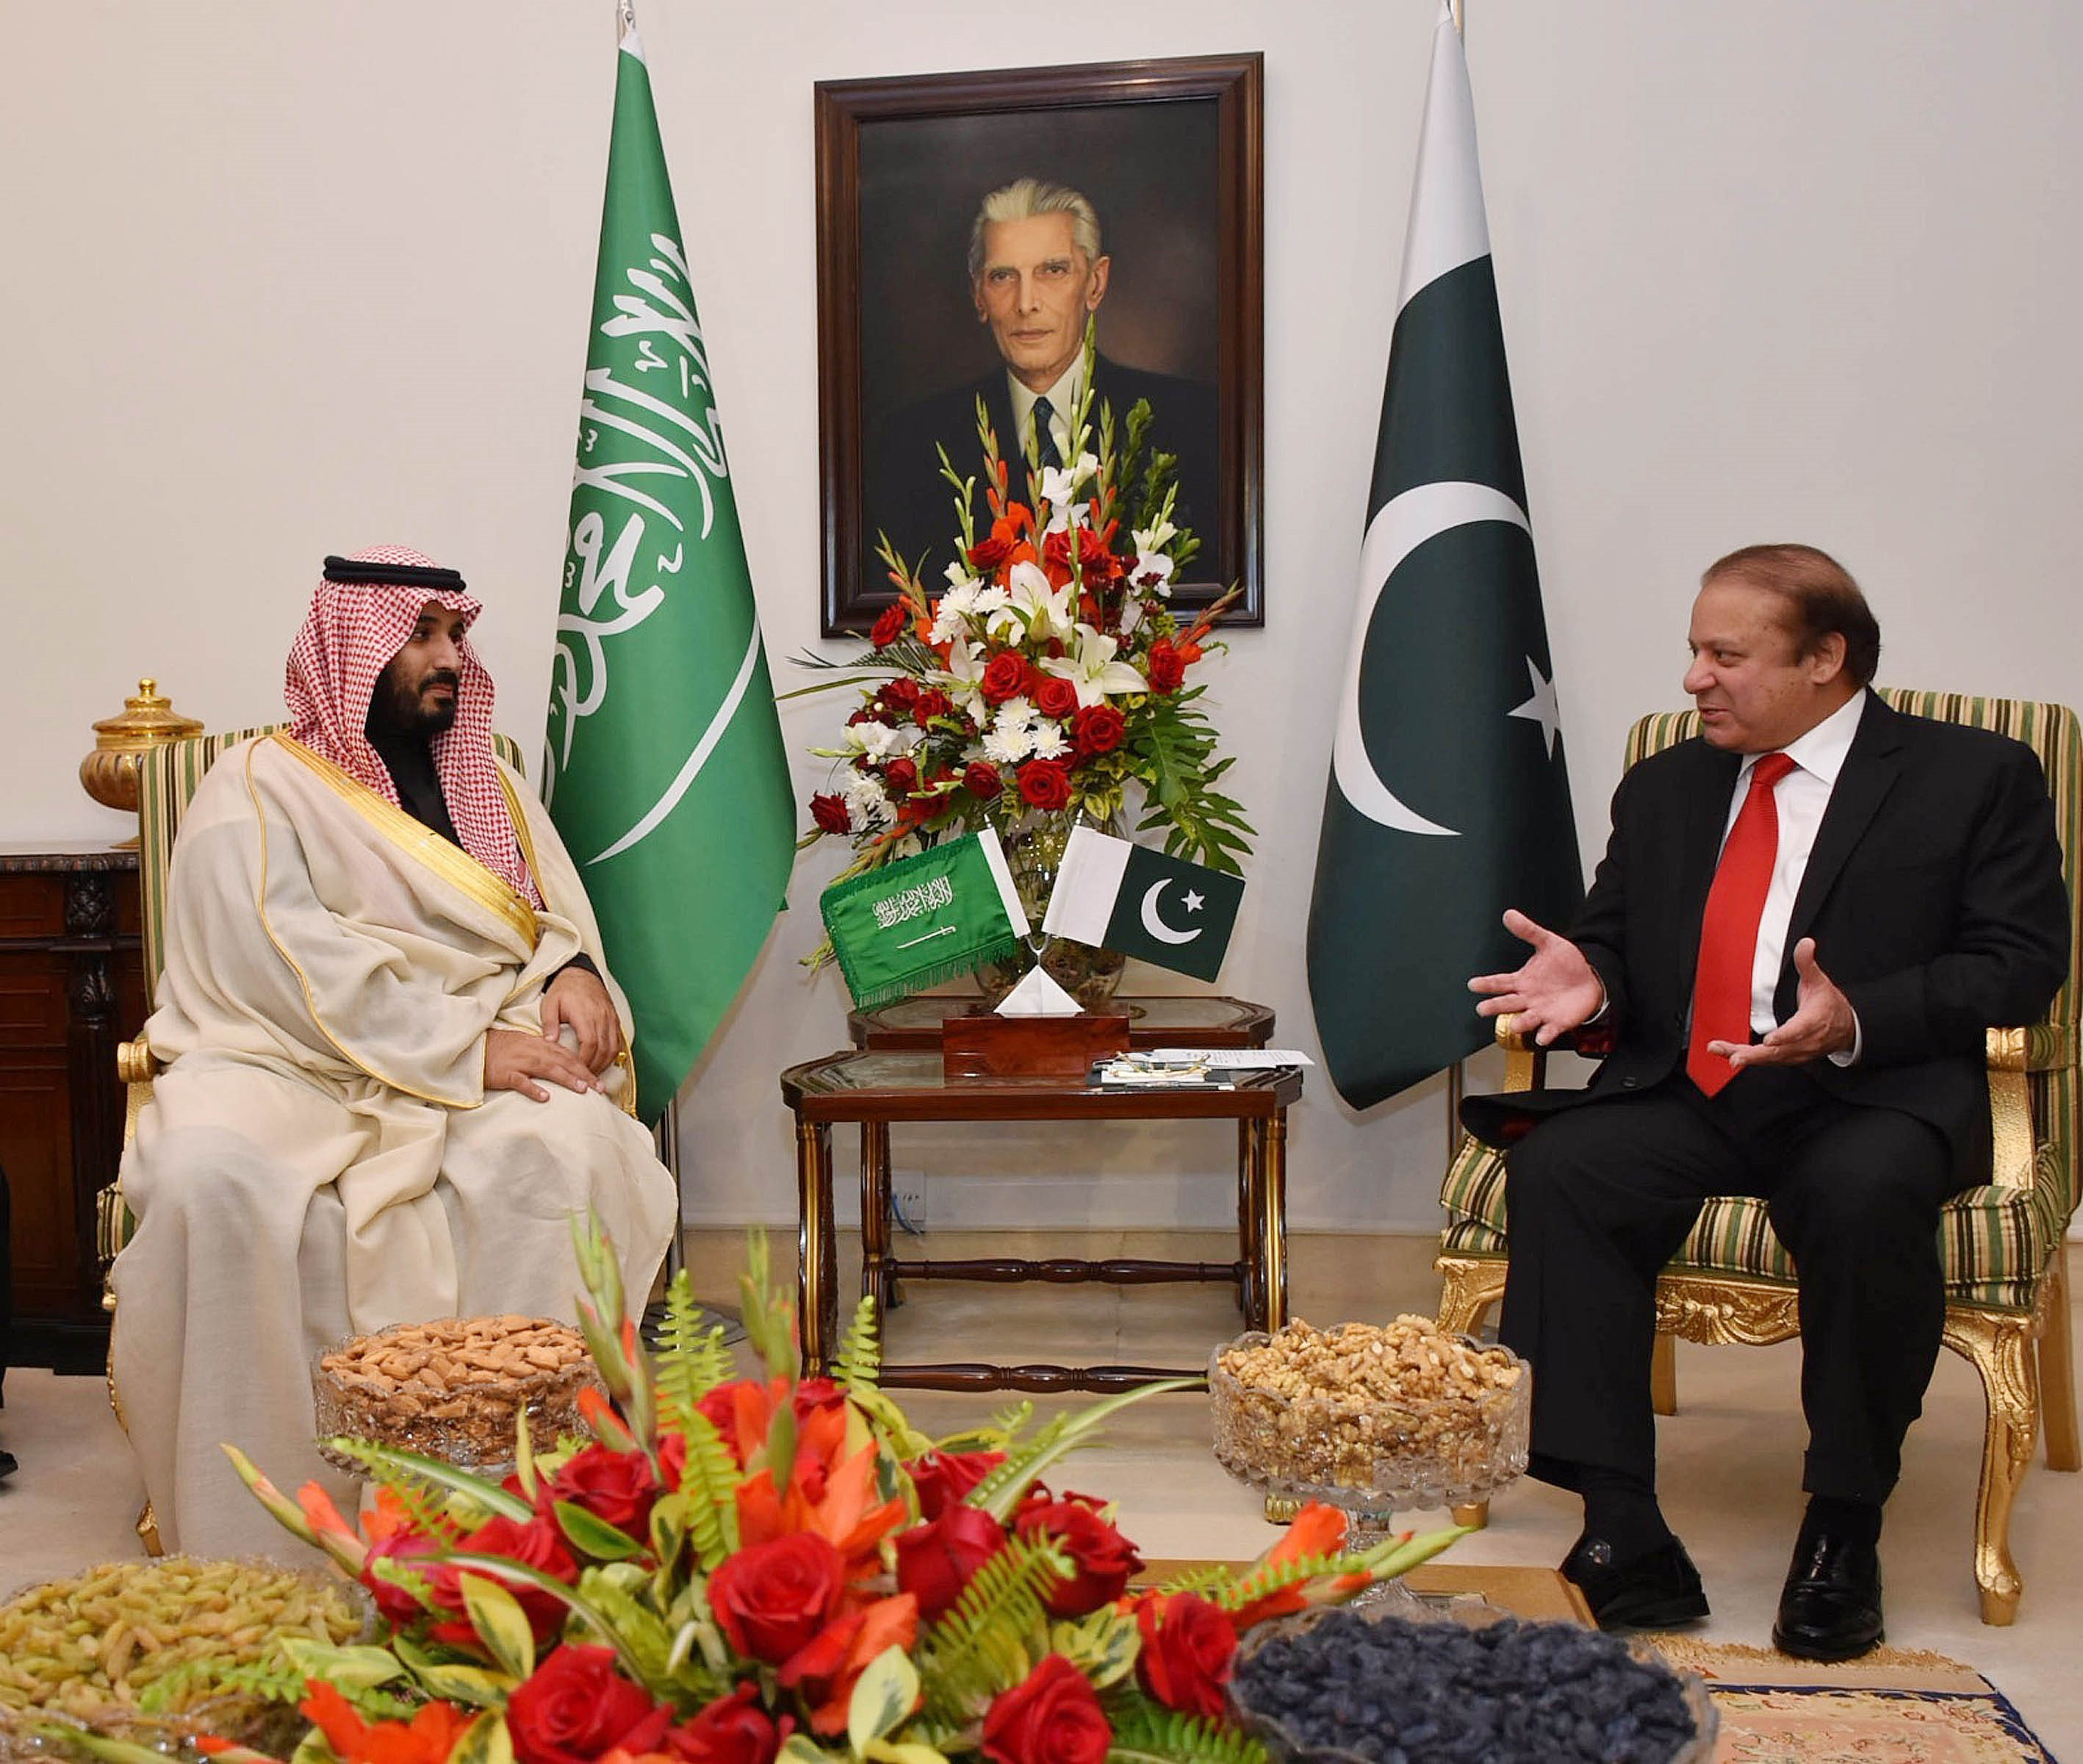 Saudi Arabia's Defense Minister Mohammed bin Salman, left, meets Pakistani Prime Minister Nawaz Sharif at the Prime Minister's Office in Islamabad on Jan. 10, 2016